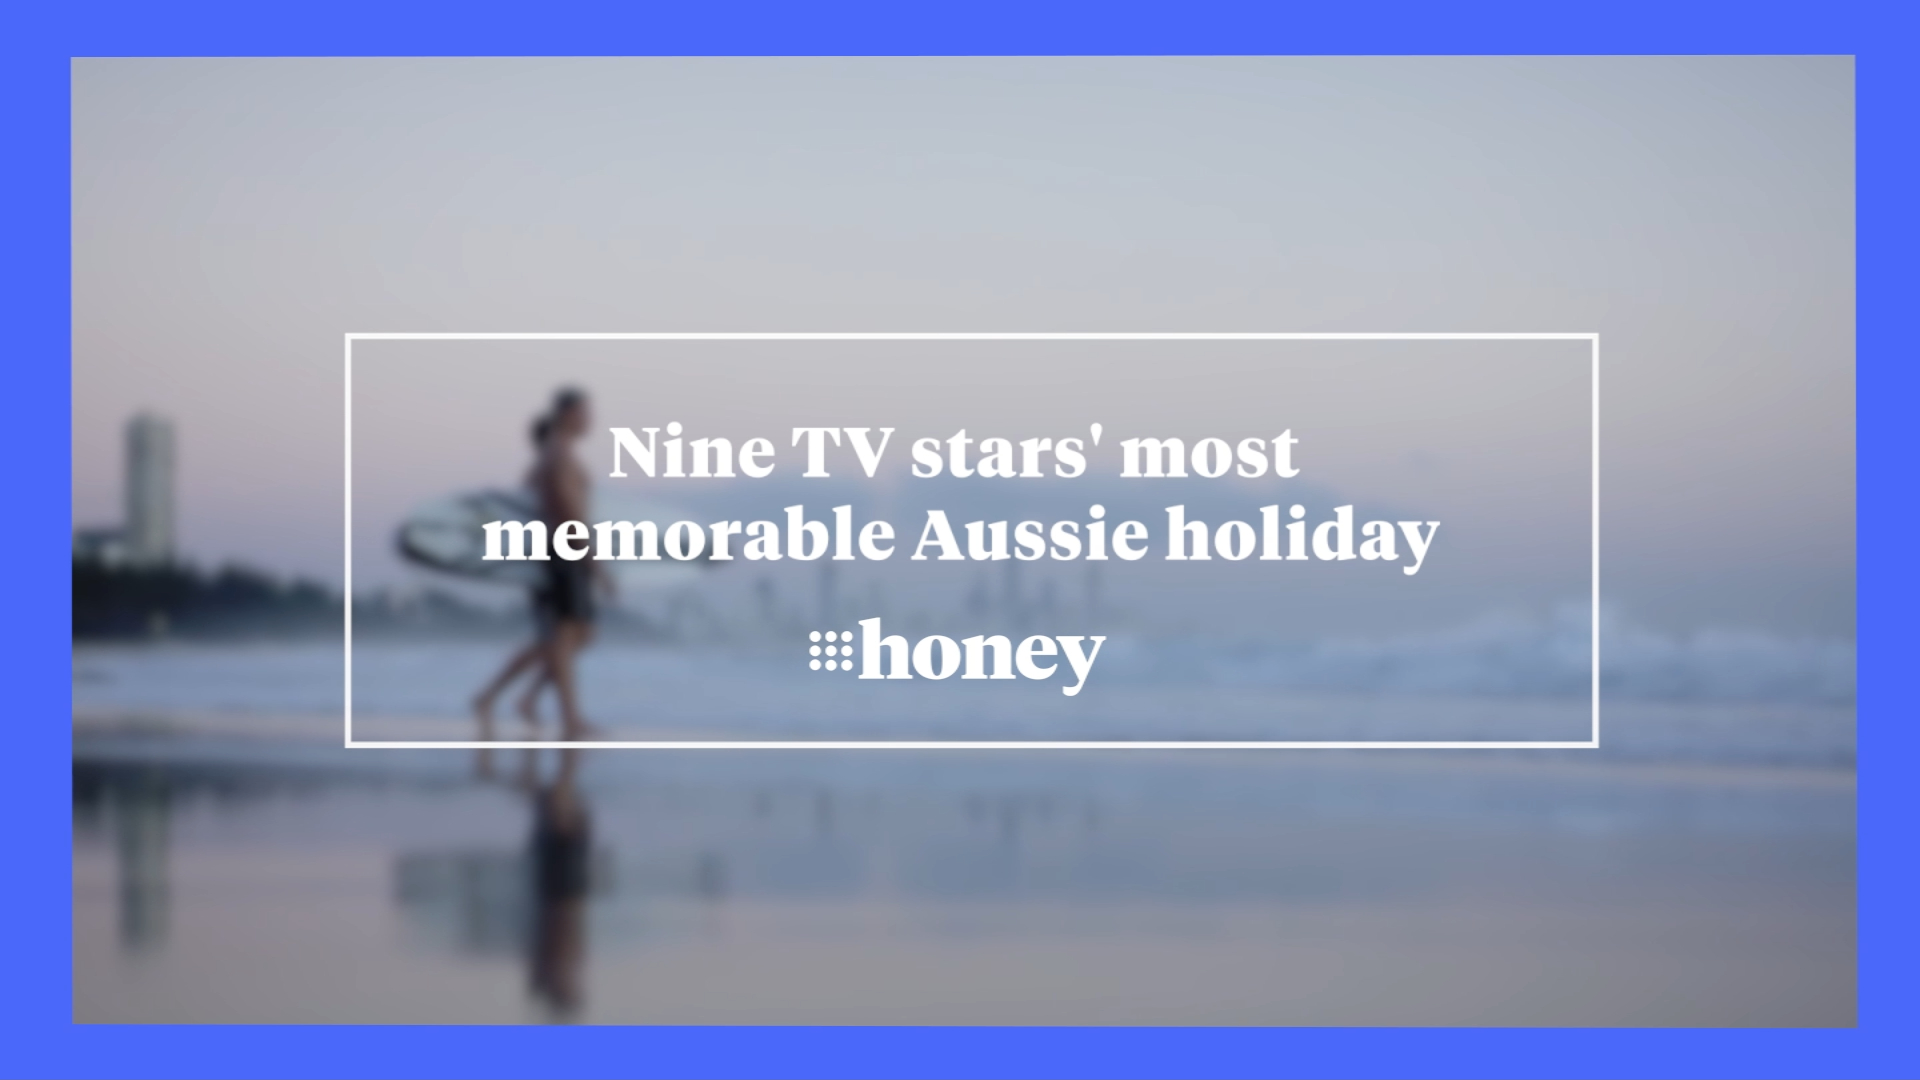 Nine TV stars' most memorable Aussie holiday